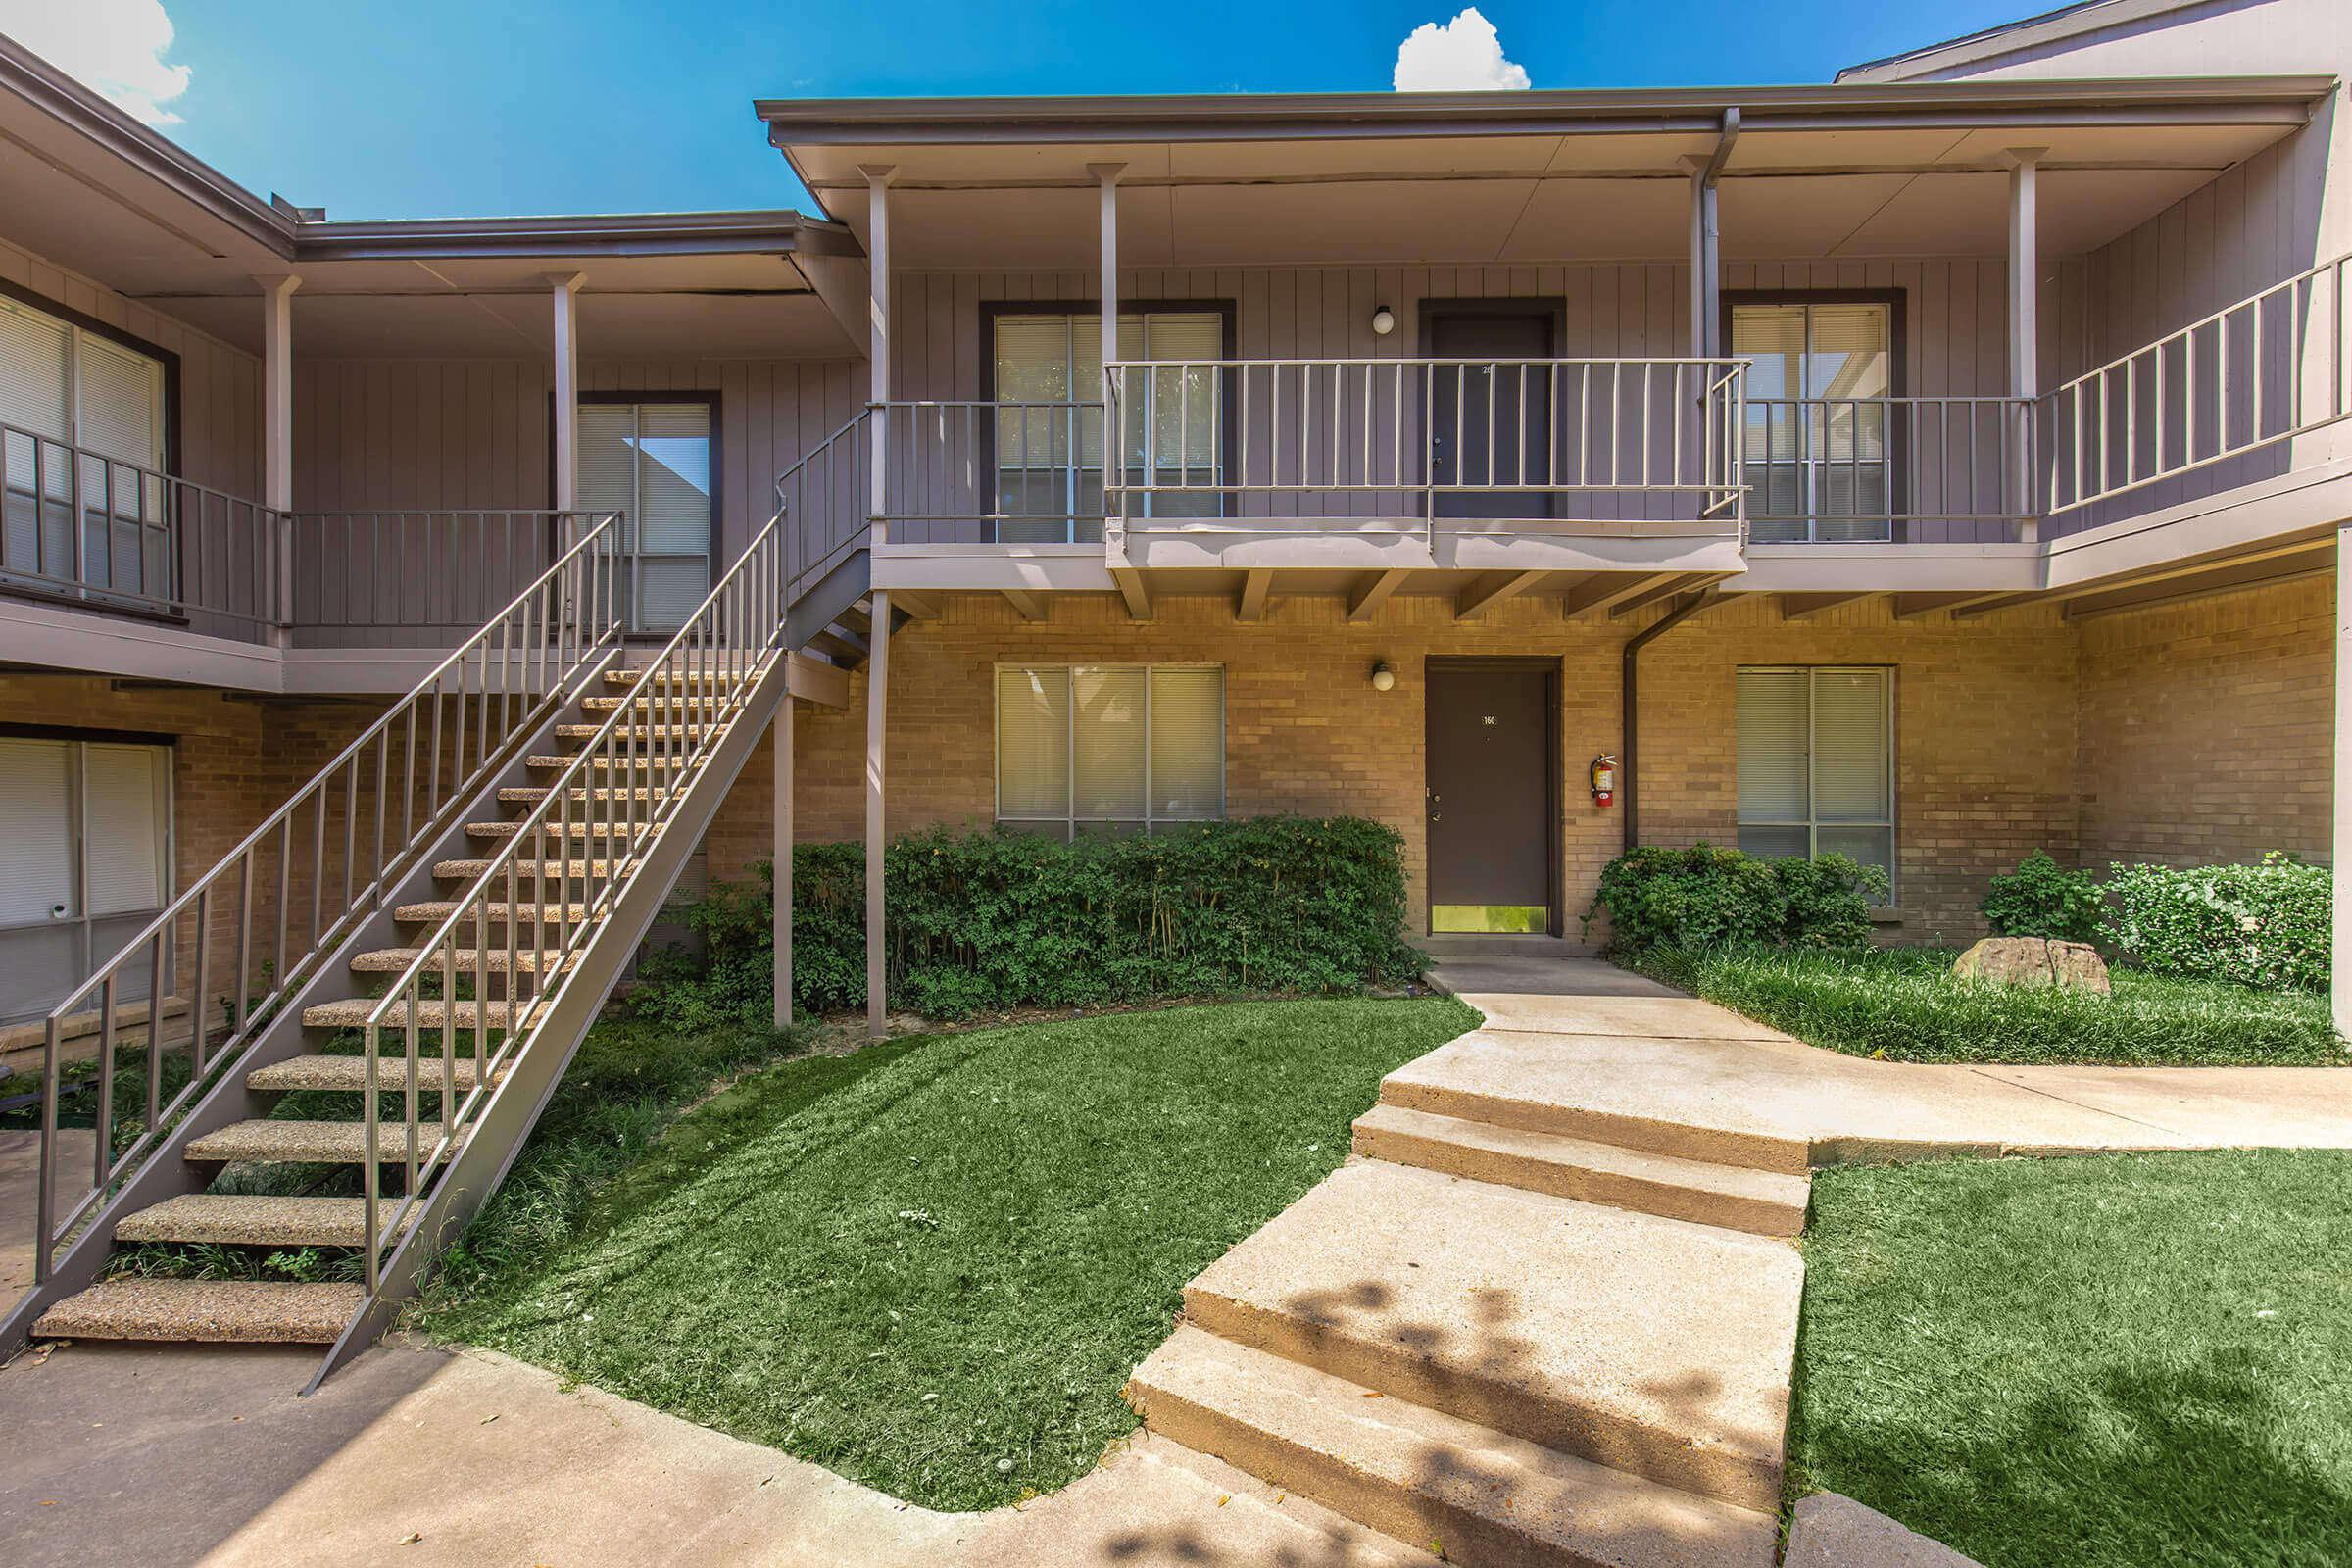 Apartments Near Amberton Fox Hills Apartments for Amberton University Students in Garland, TX